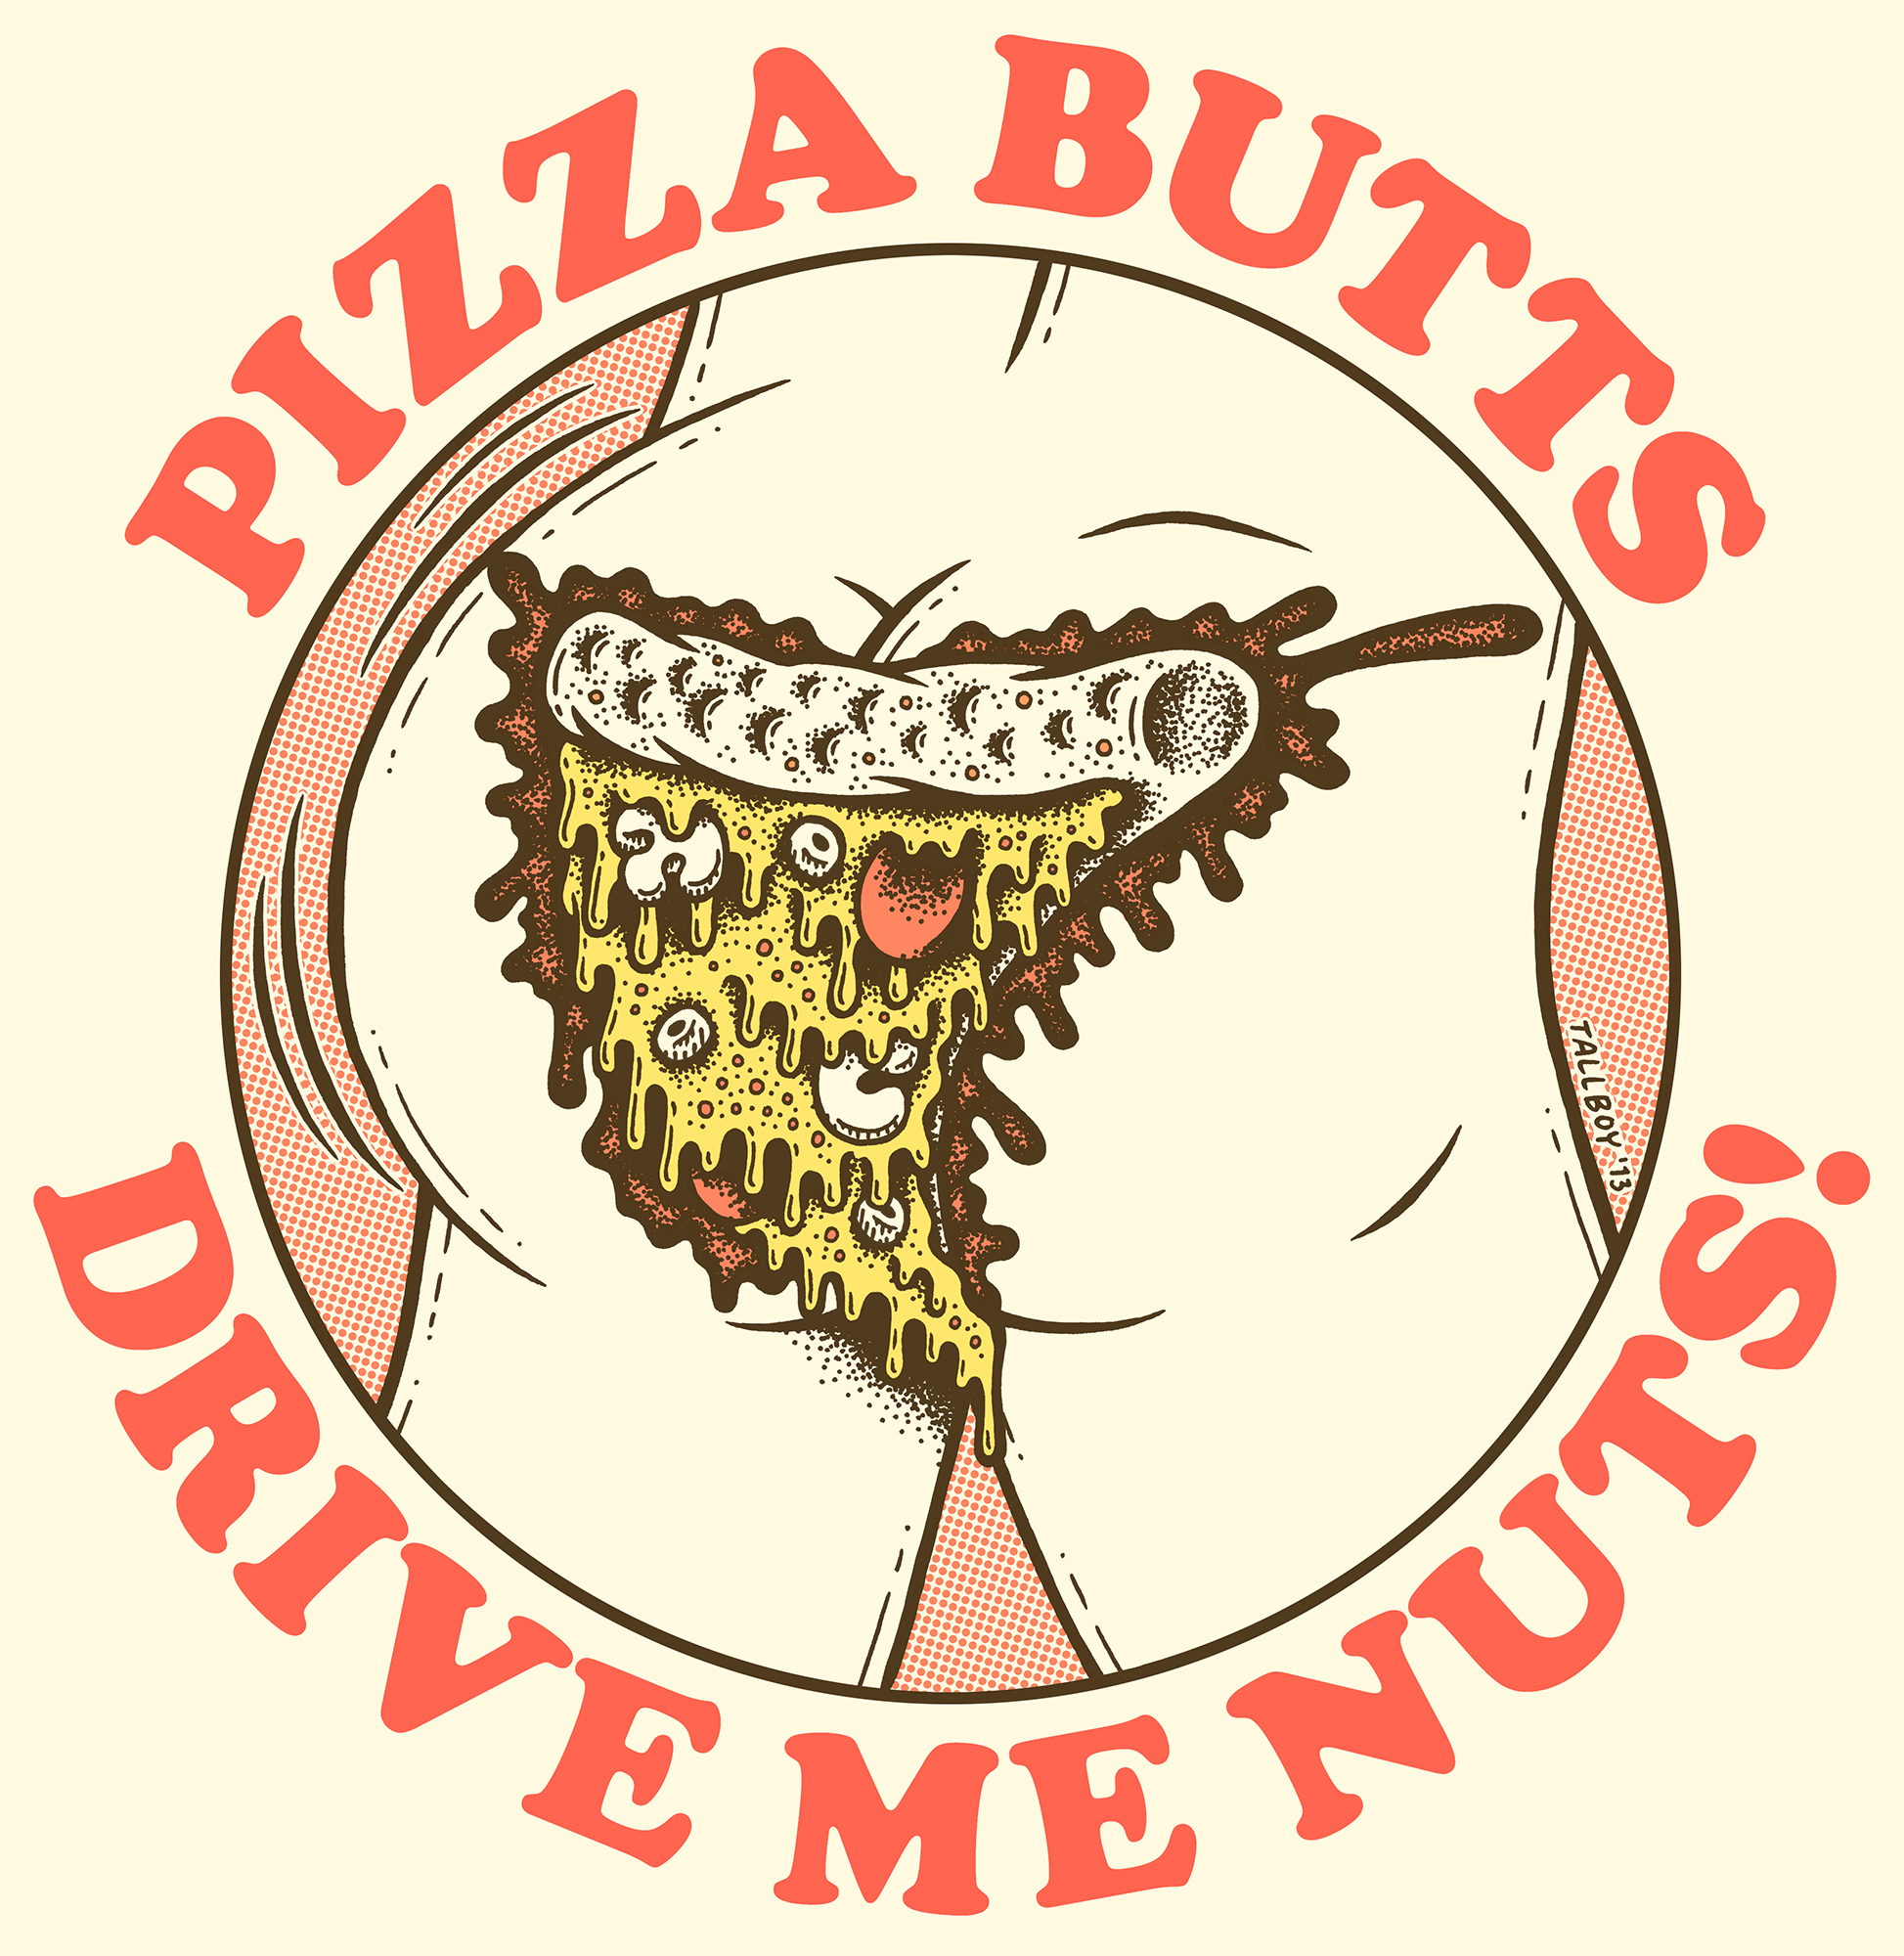 Pizza-Butts